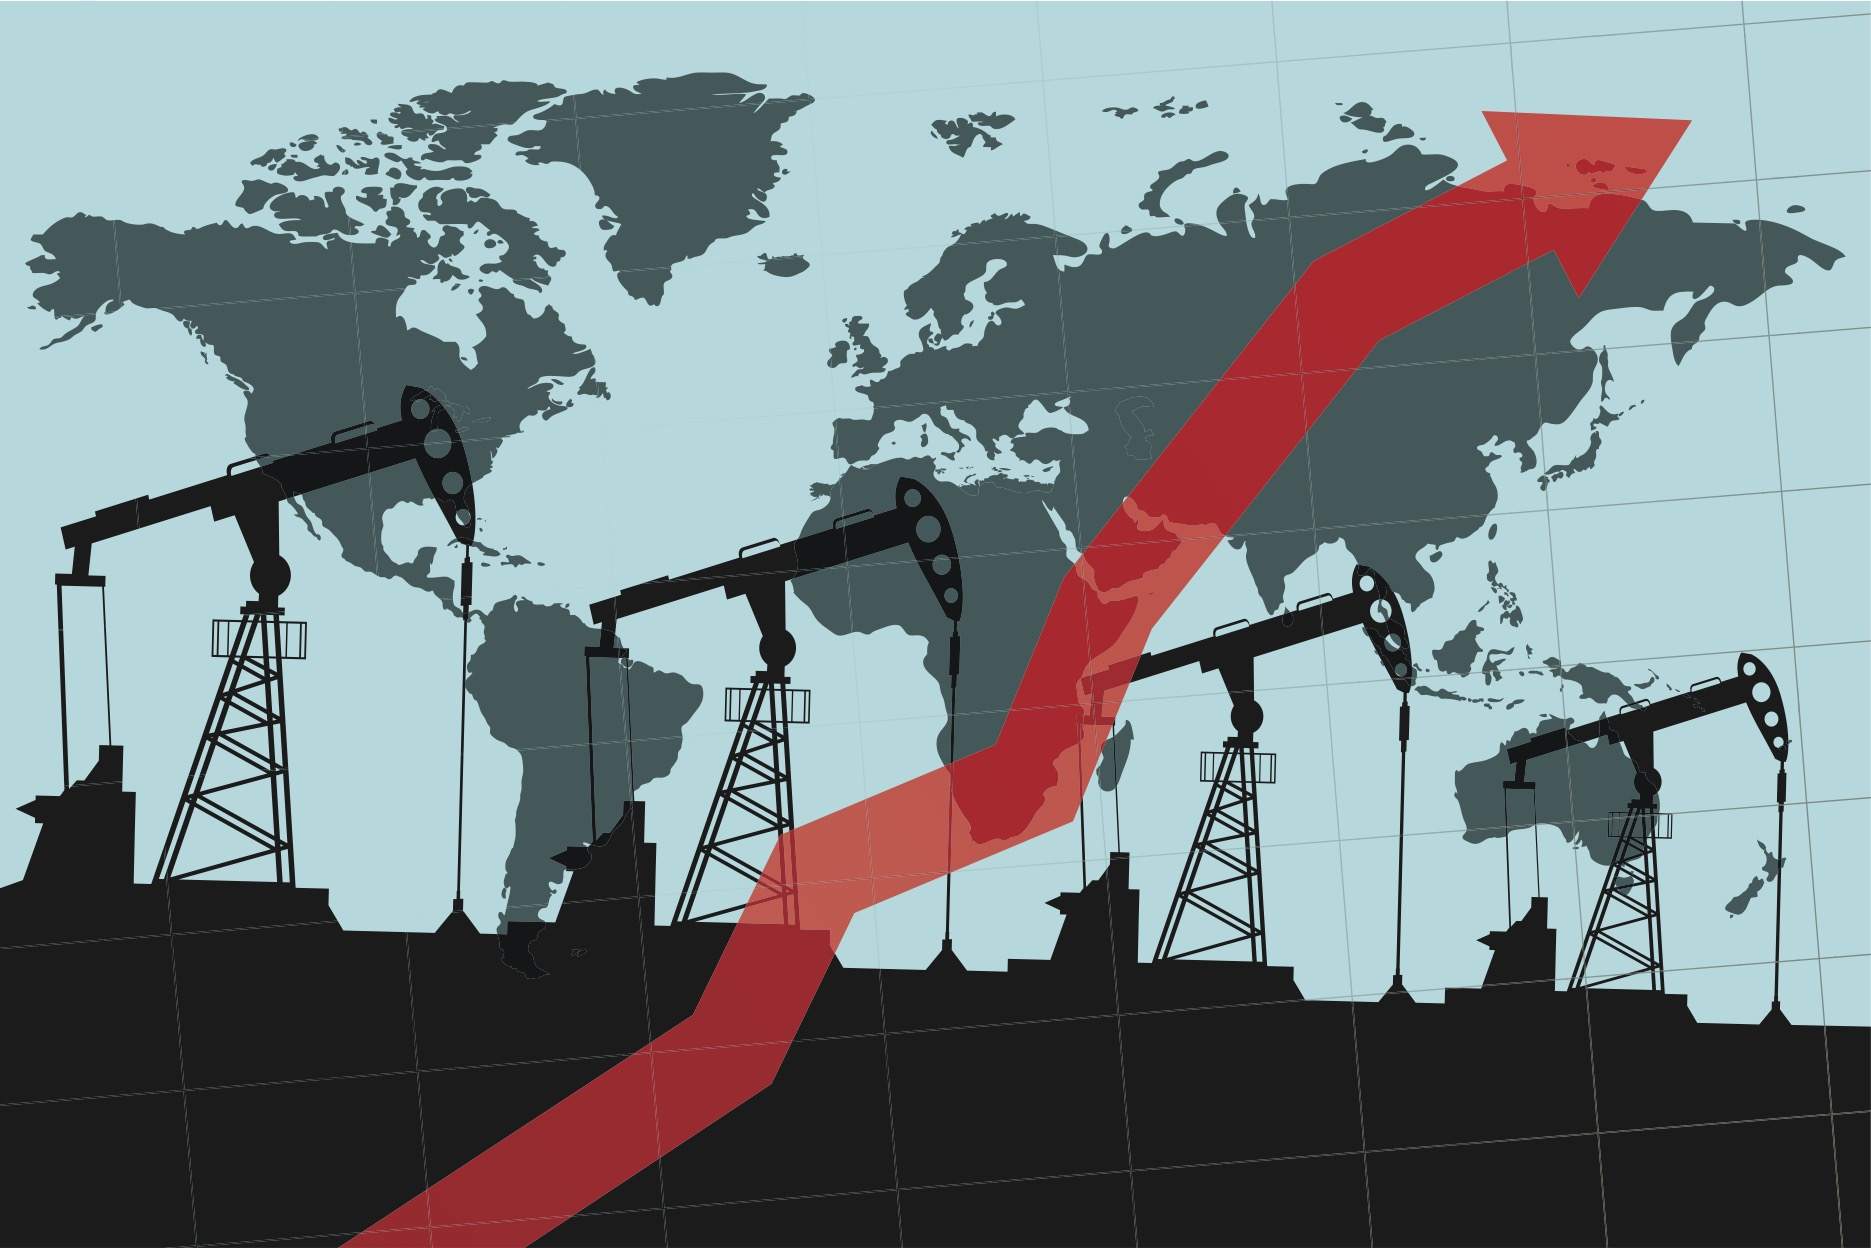 An illustration of oil pumps superimposed on a world map and covered with an arrow representing profits pointing up and to the right.